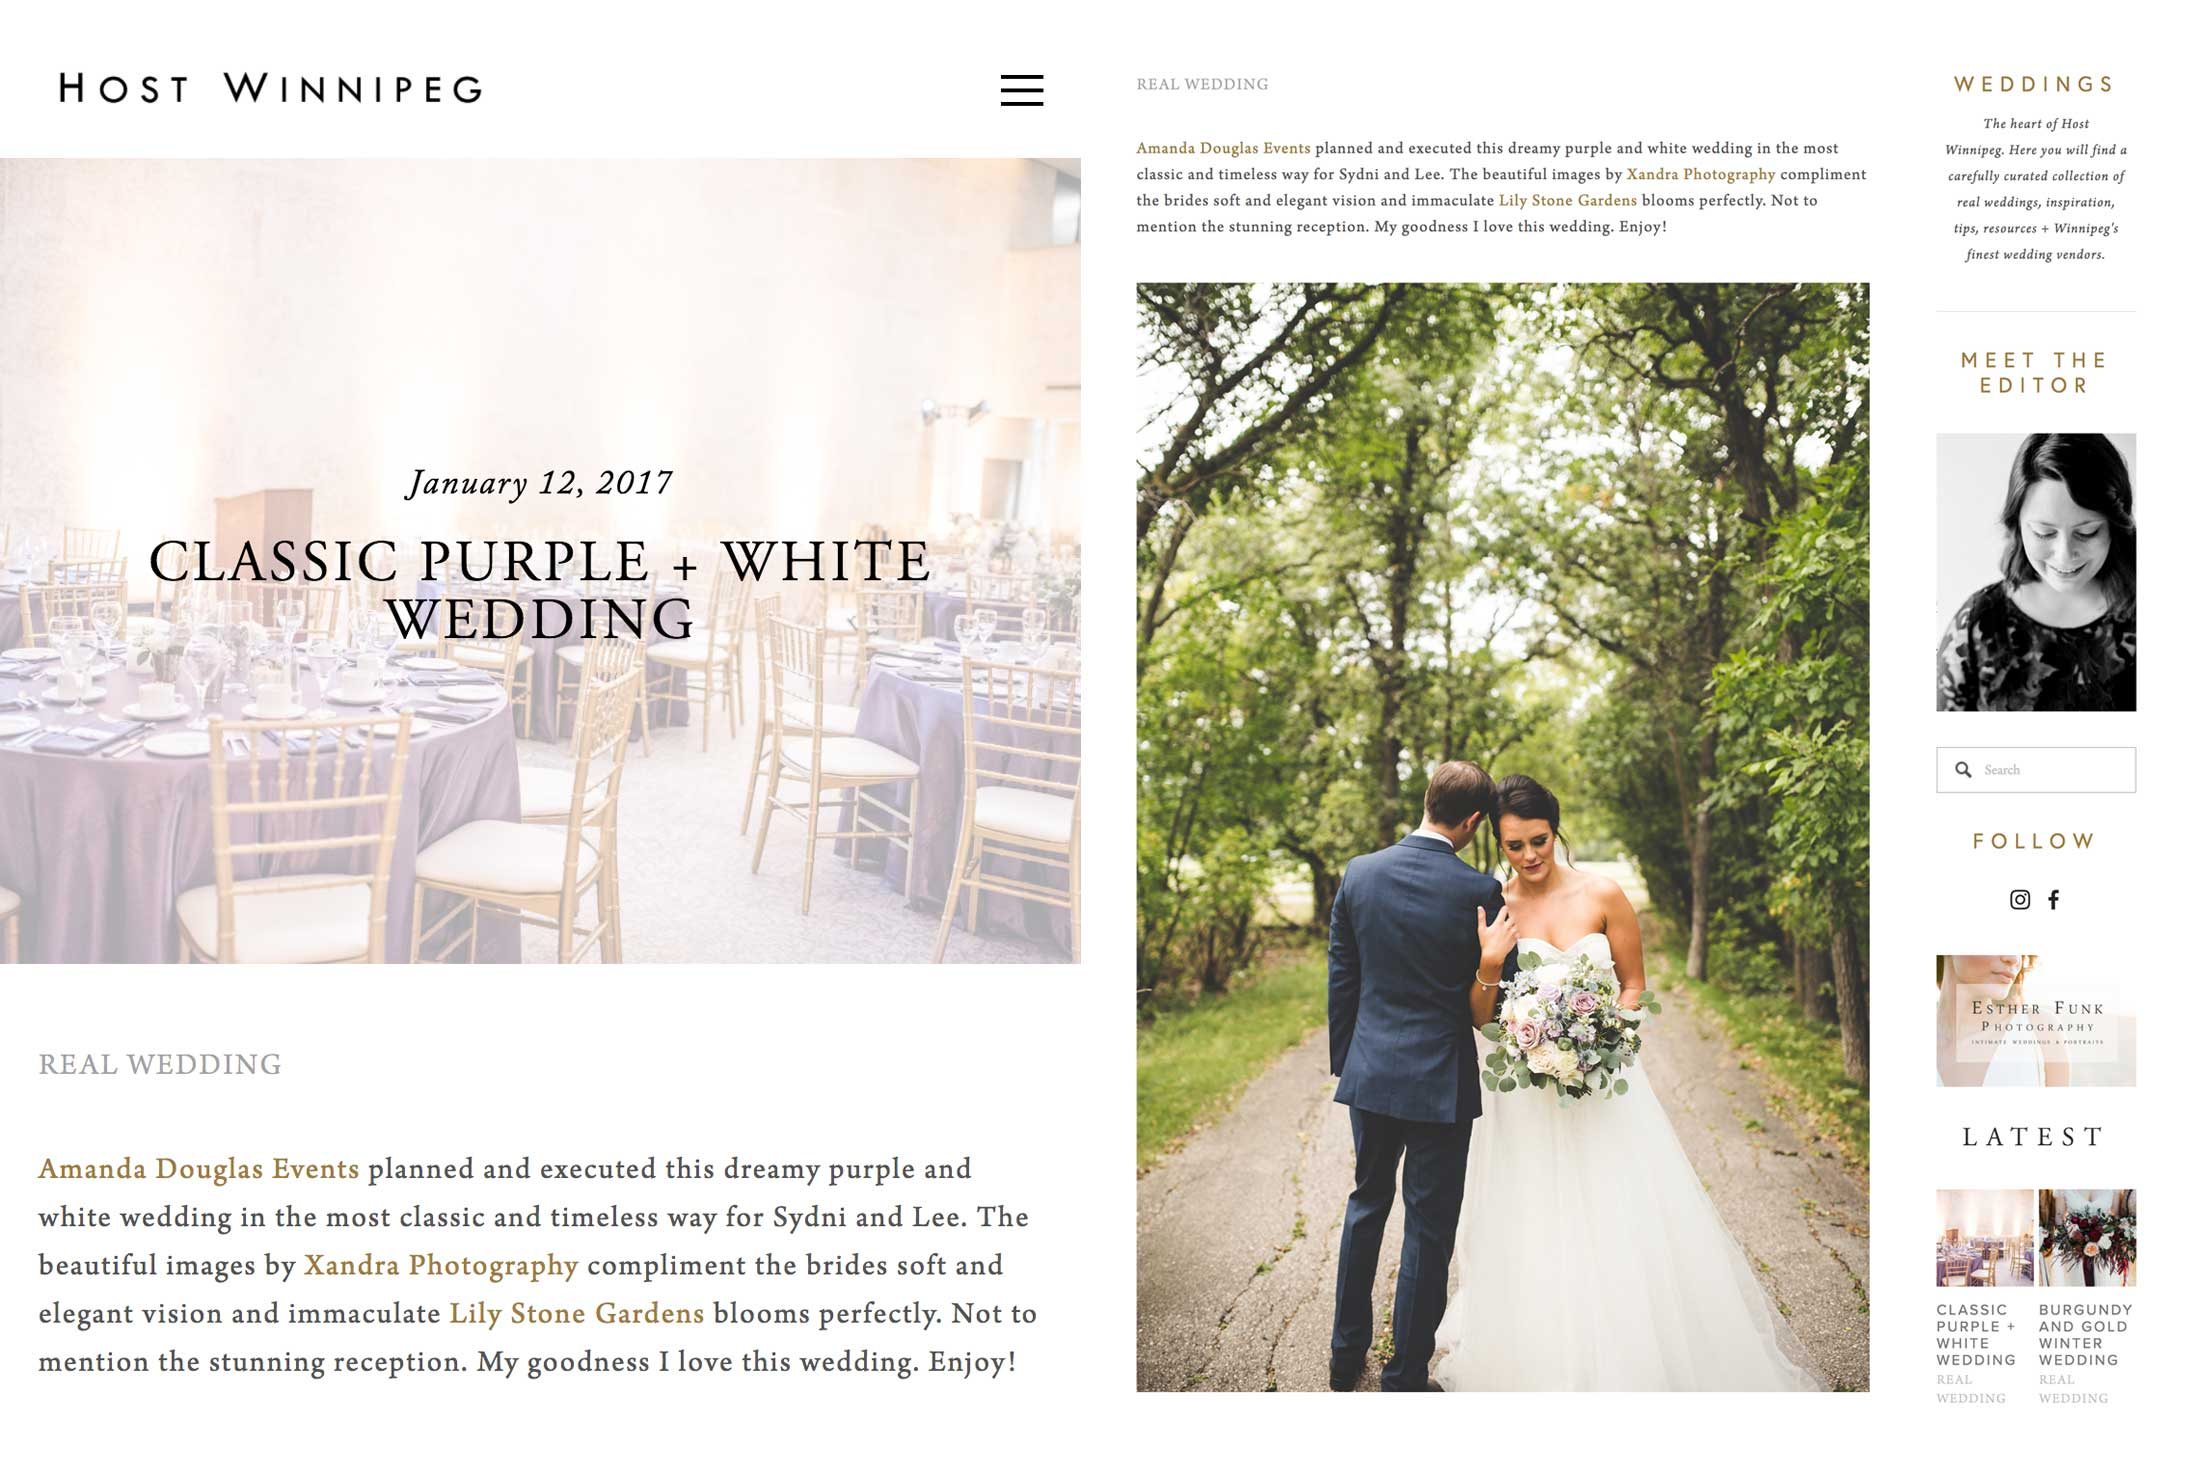 Winnipeg Wedding Planner and Inspiration Feature: Sydni and Lee